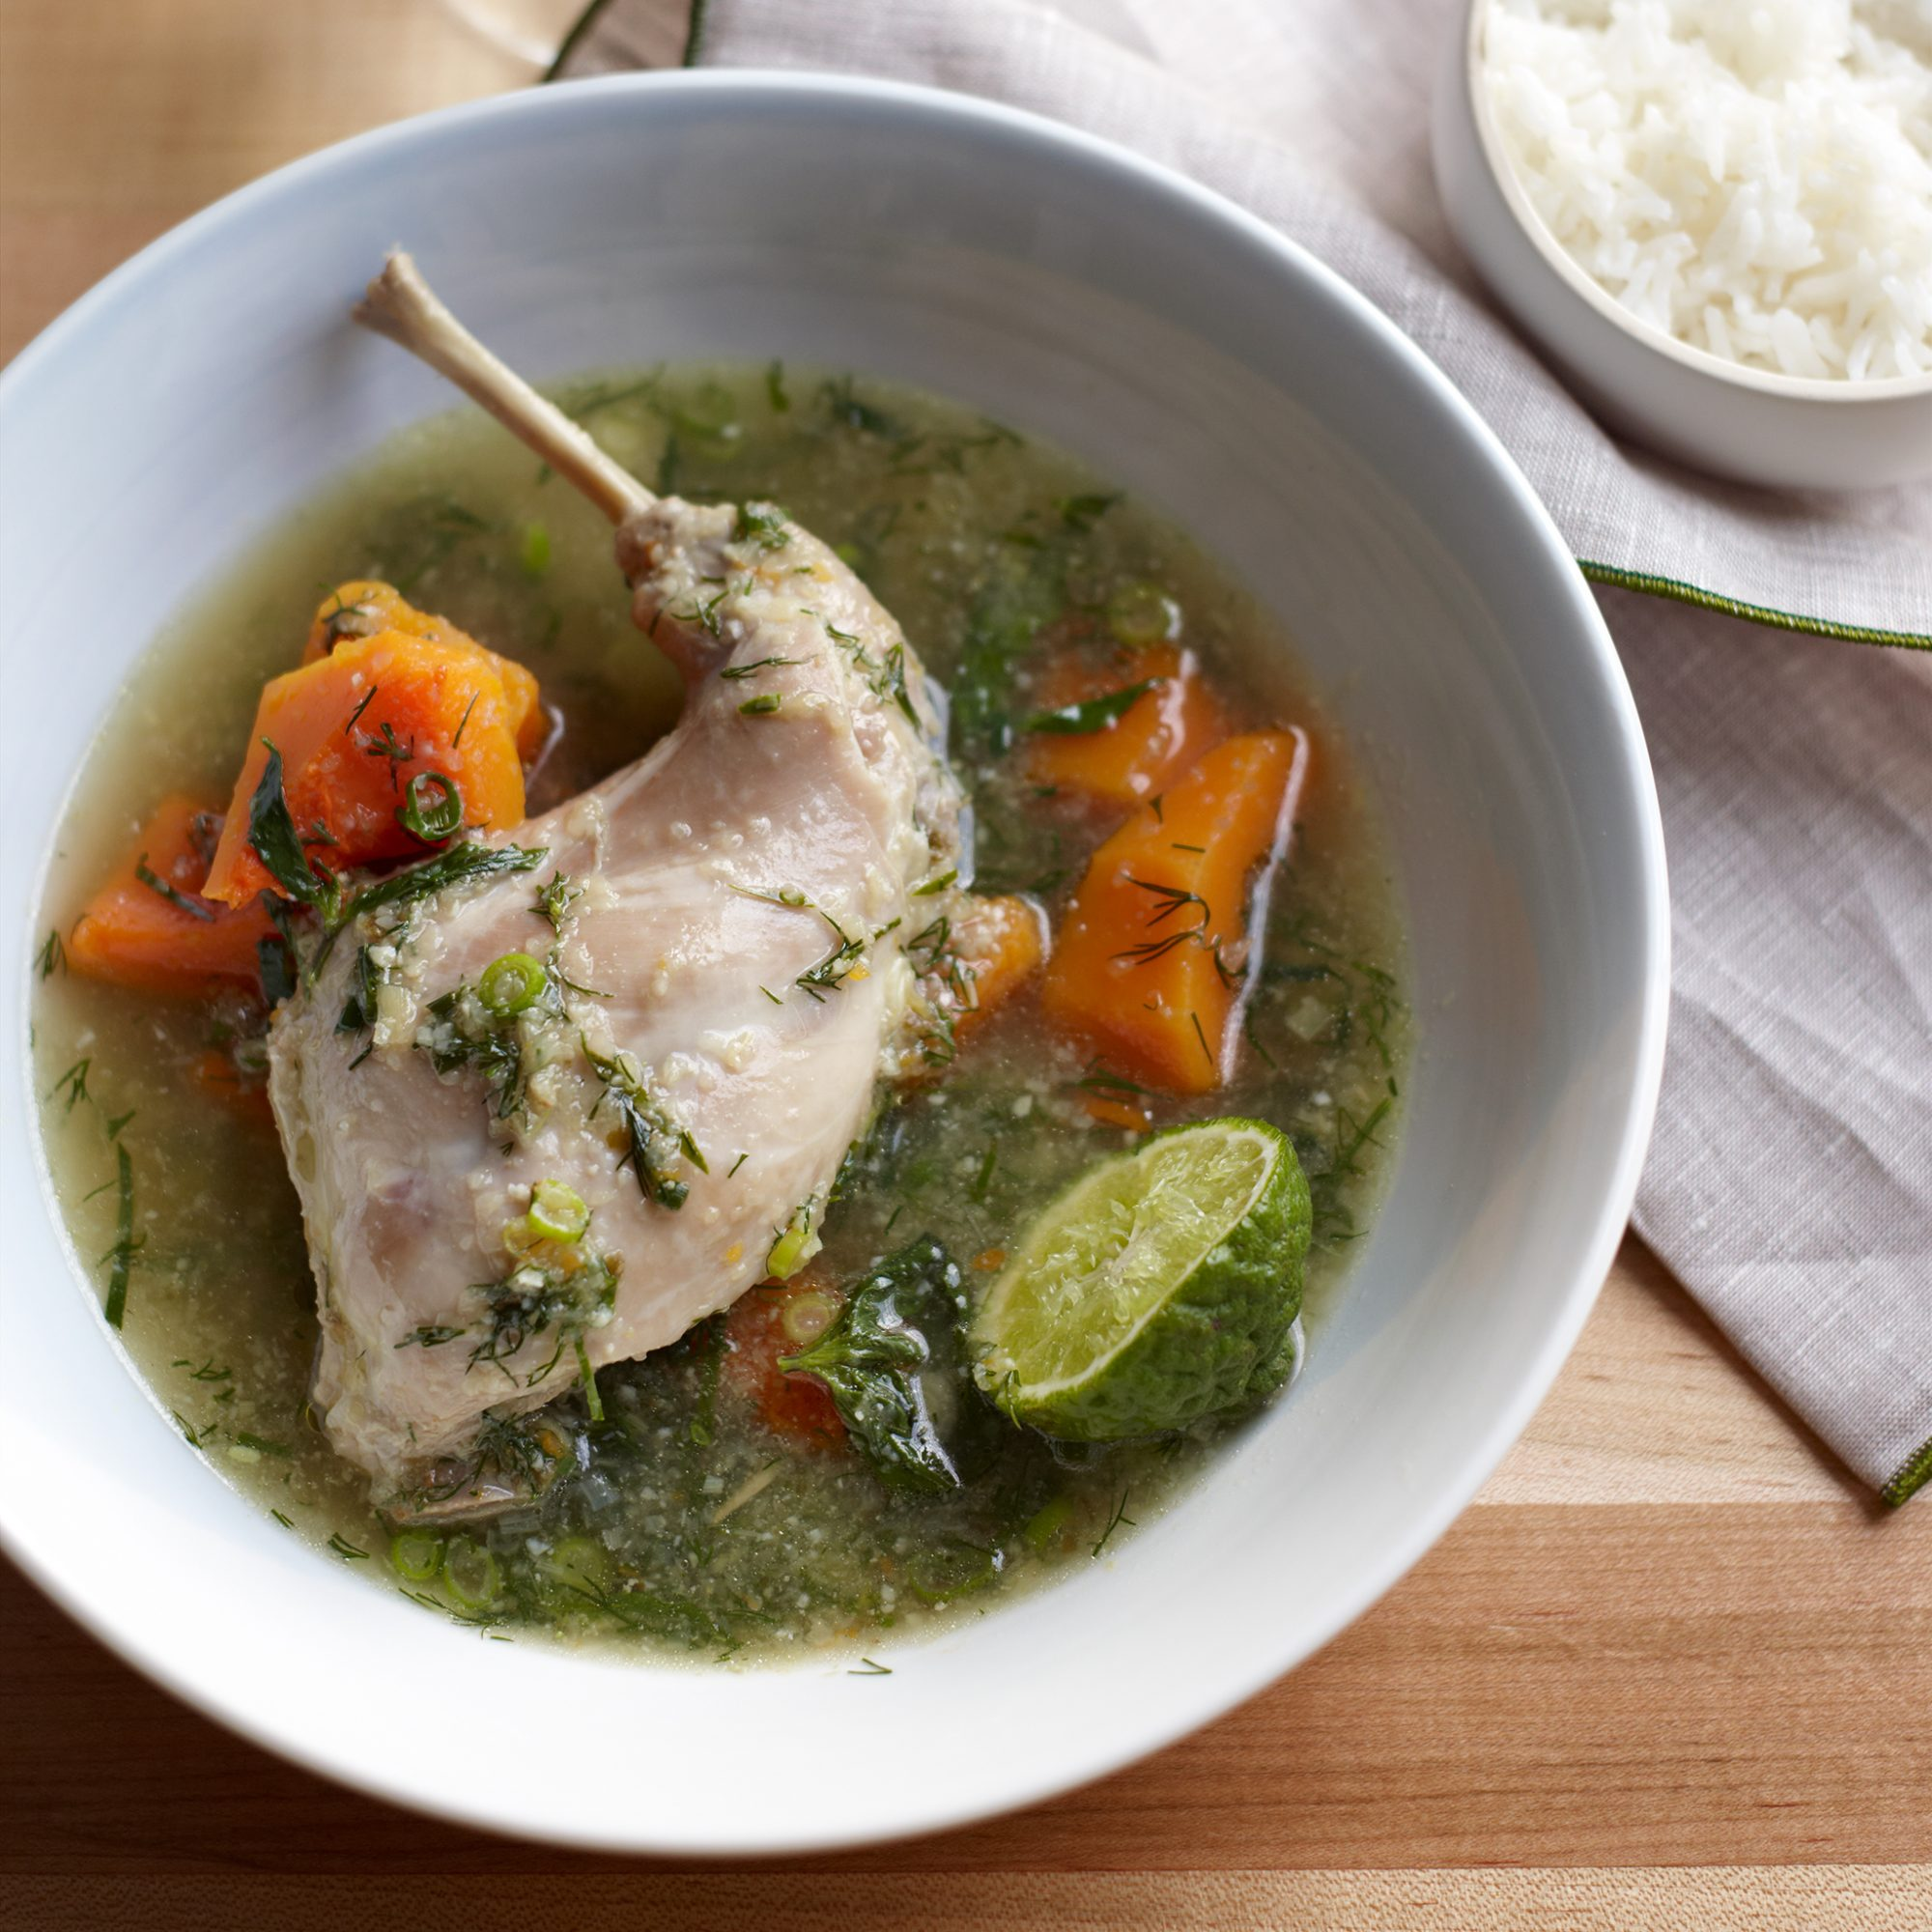 Green Curry of Rabbit, Butternut Squash and Dill